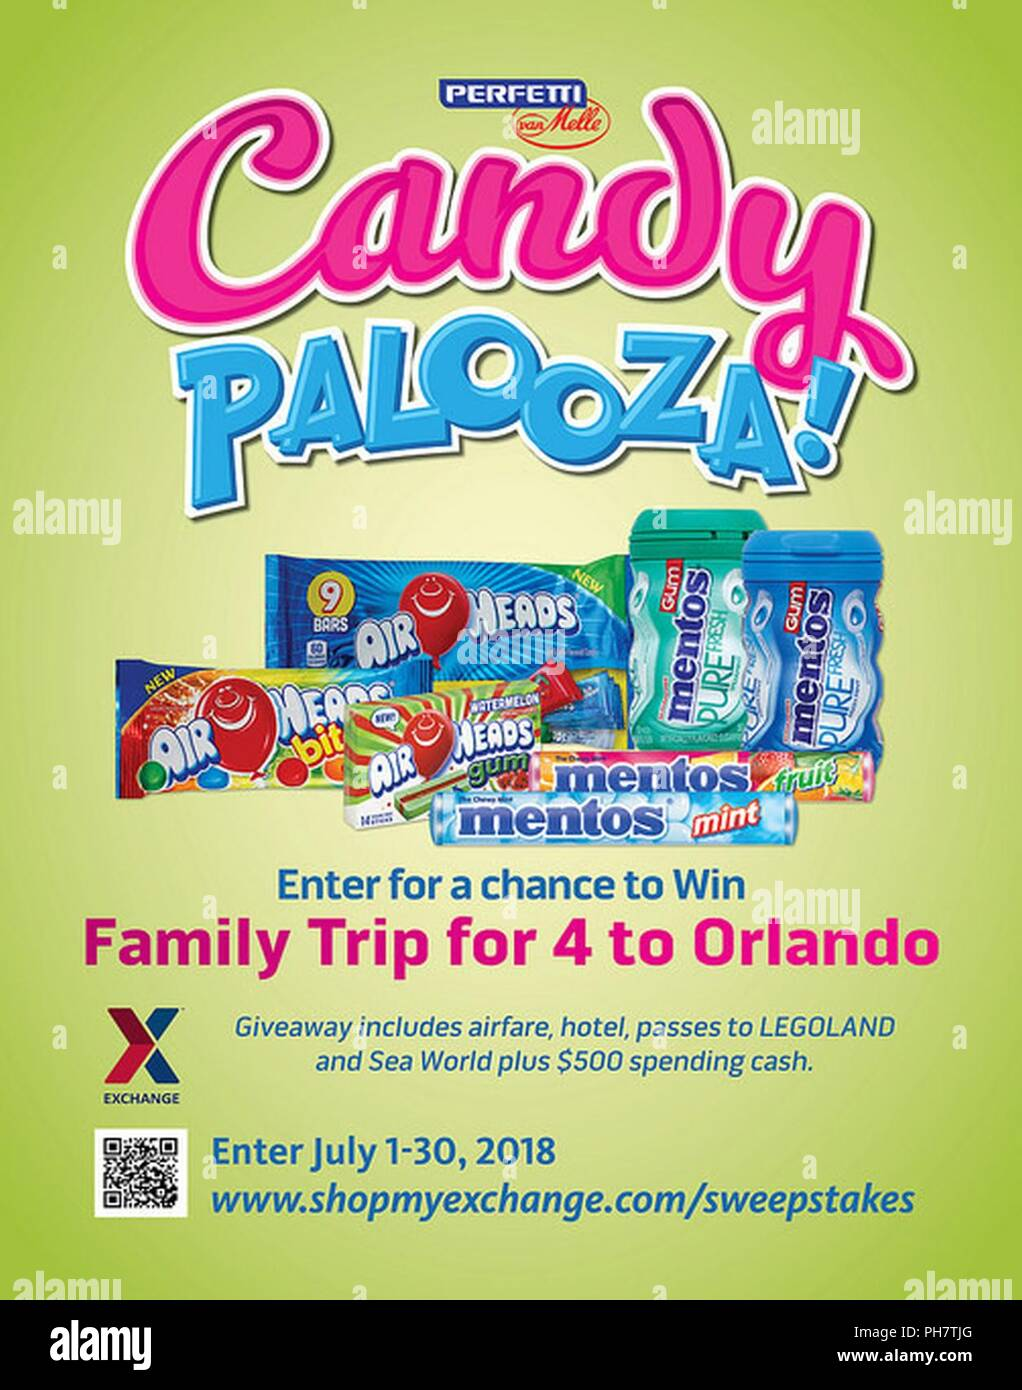 Enter the Perfetti Van Melle Candy Palooza Sweepstakes for a